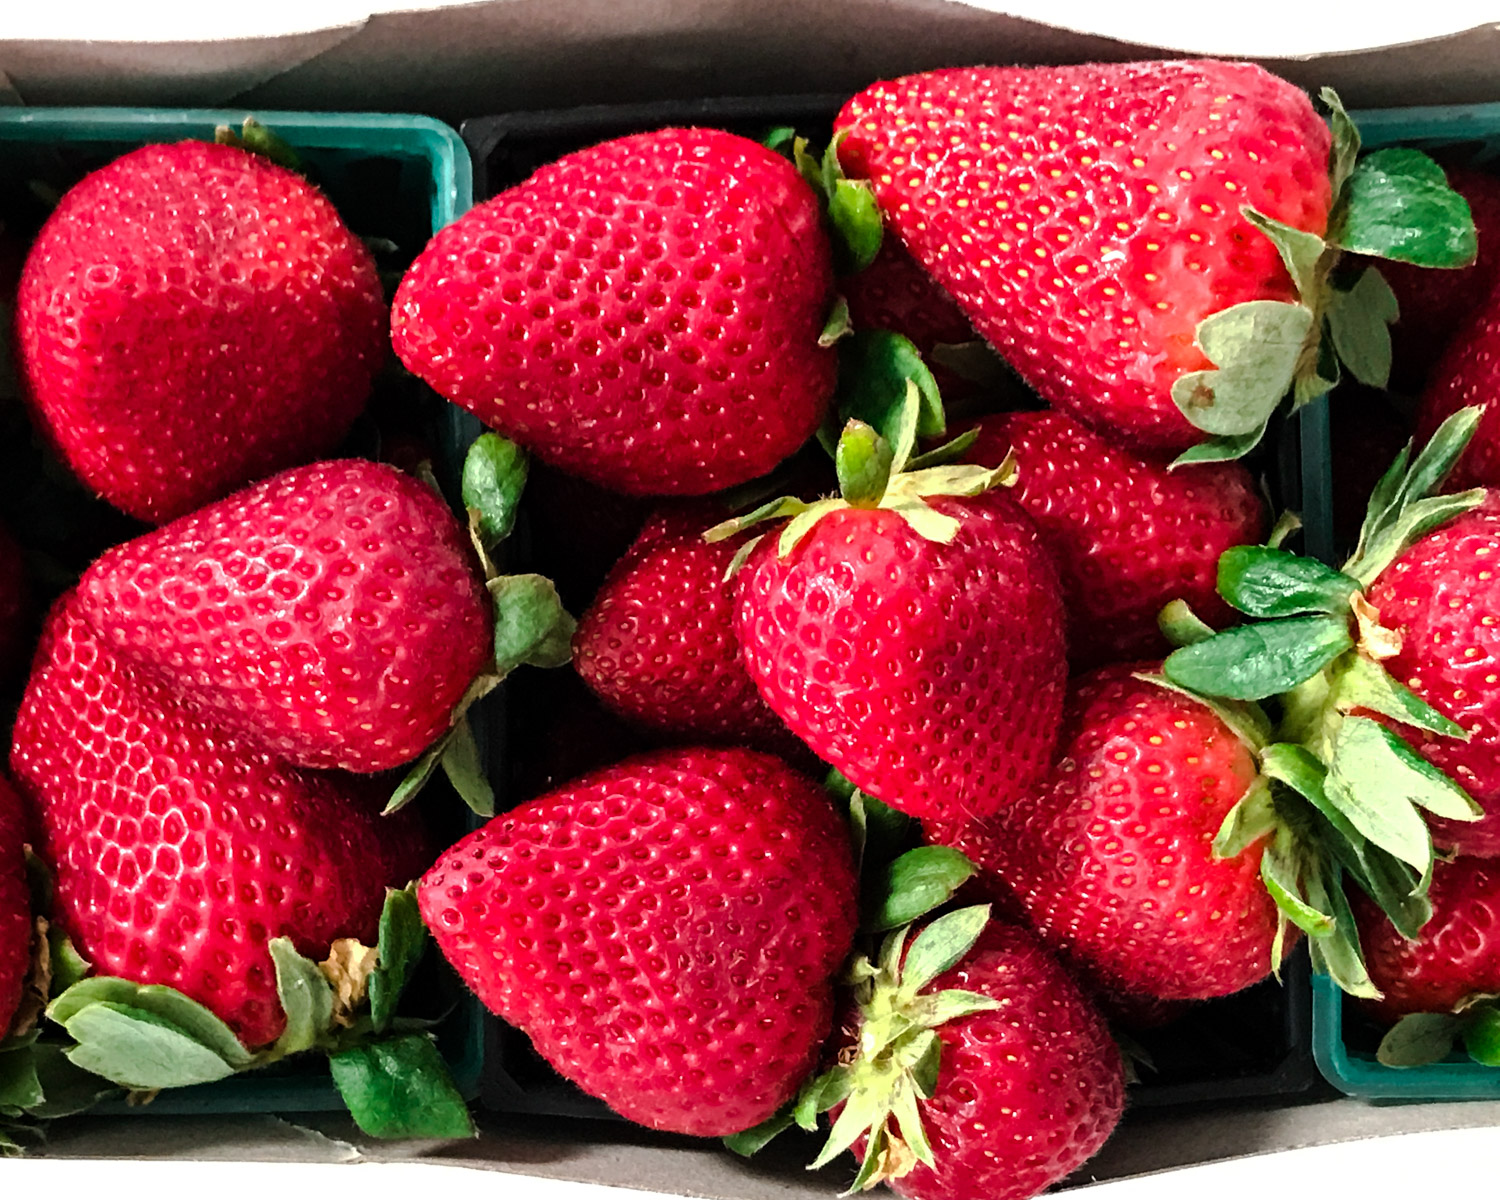 Fresh strawberries from our local farmer's market.